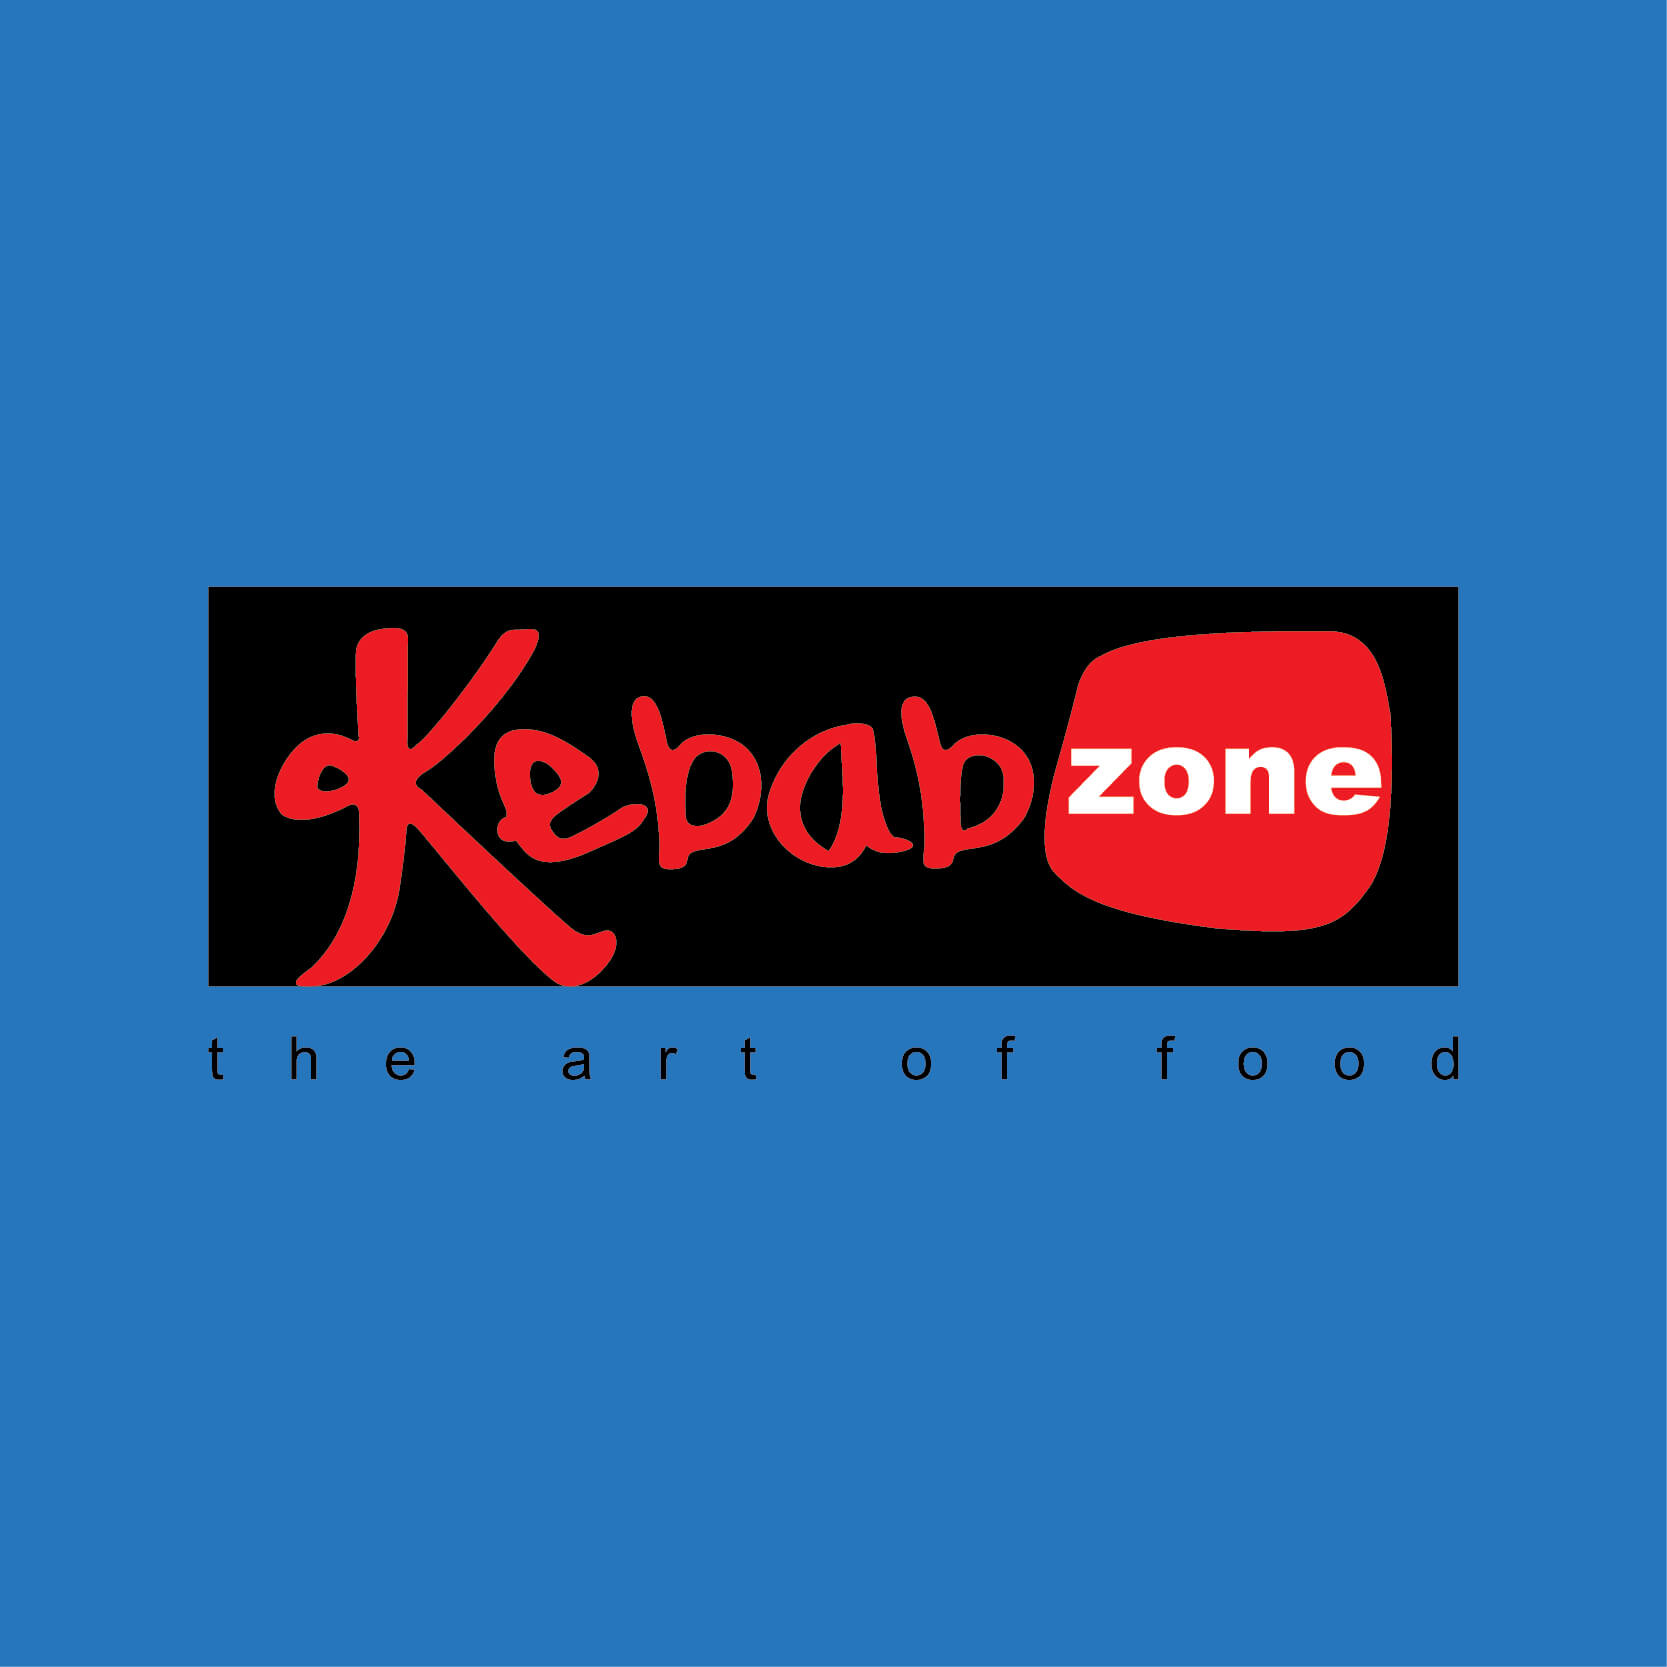 DTC-Clients-Served-Logo-Kebab Zone